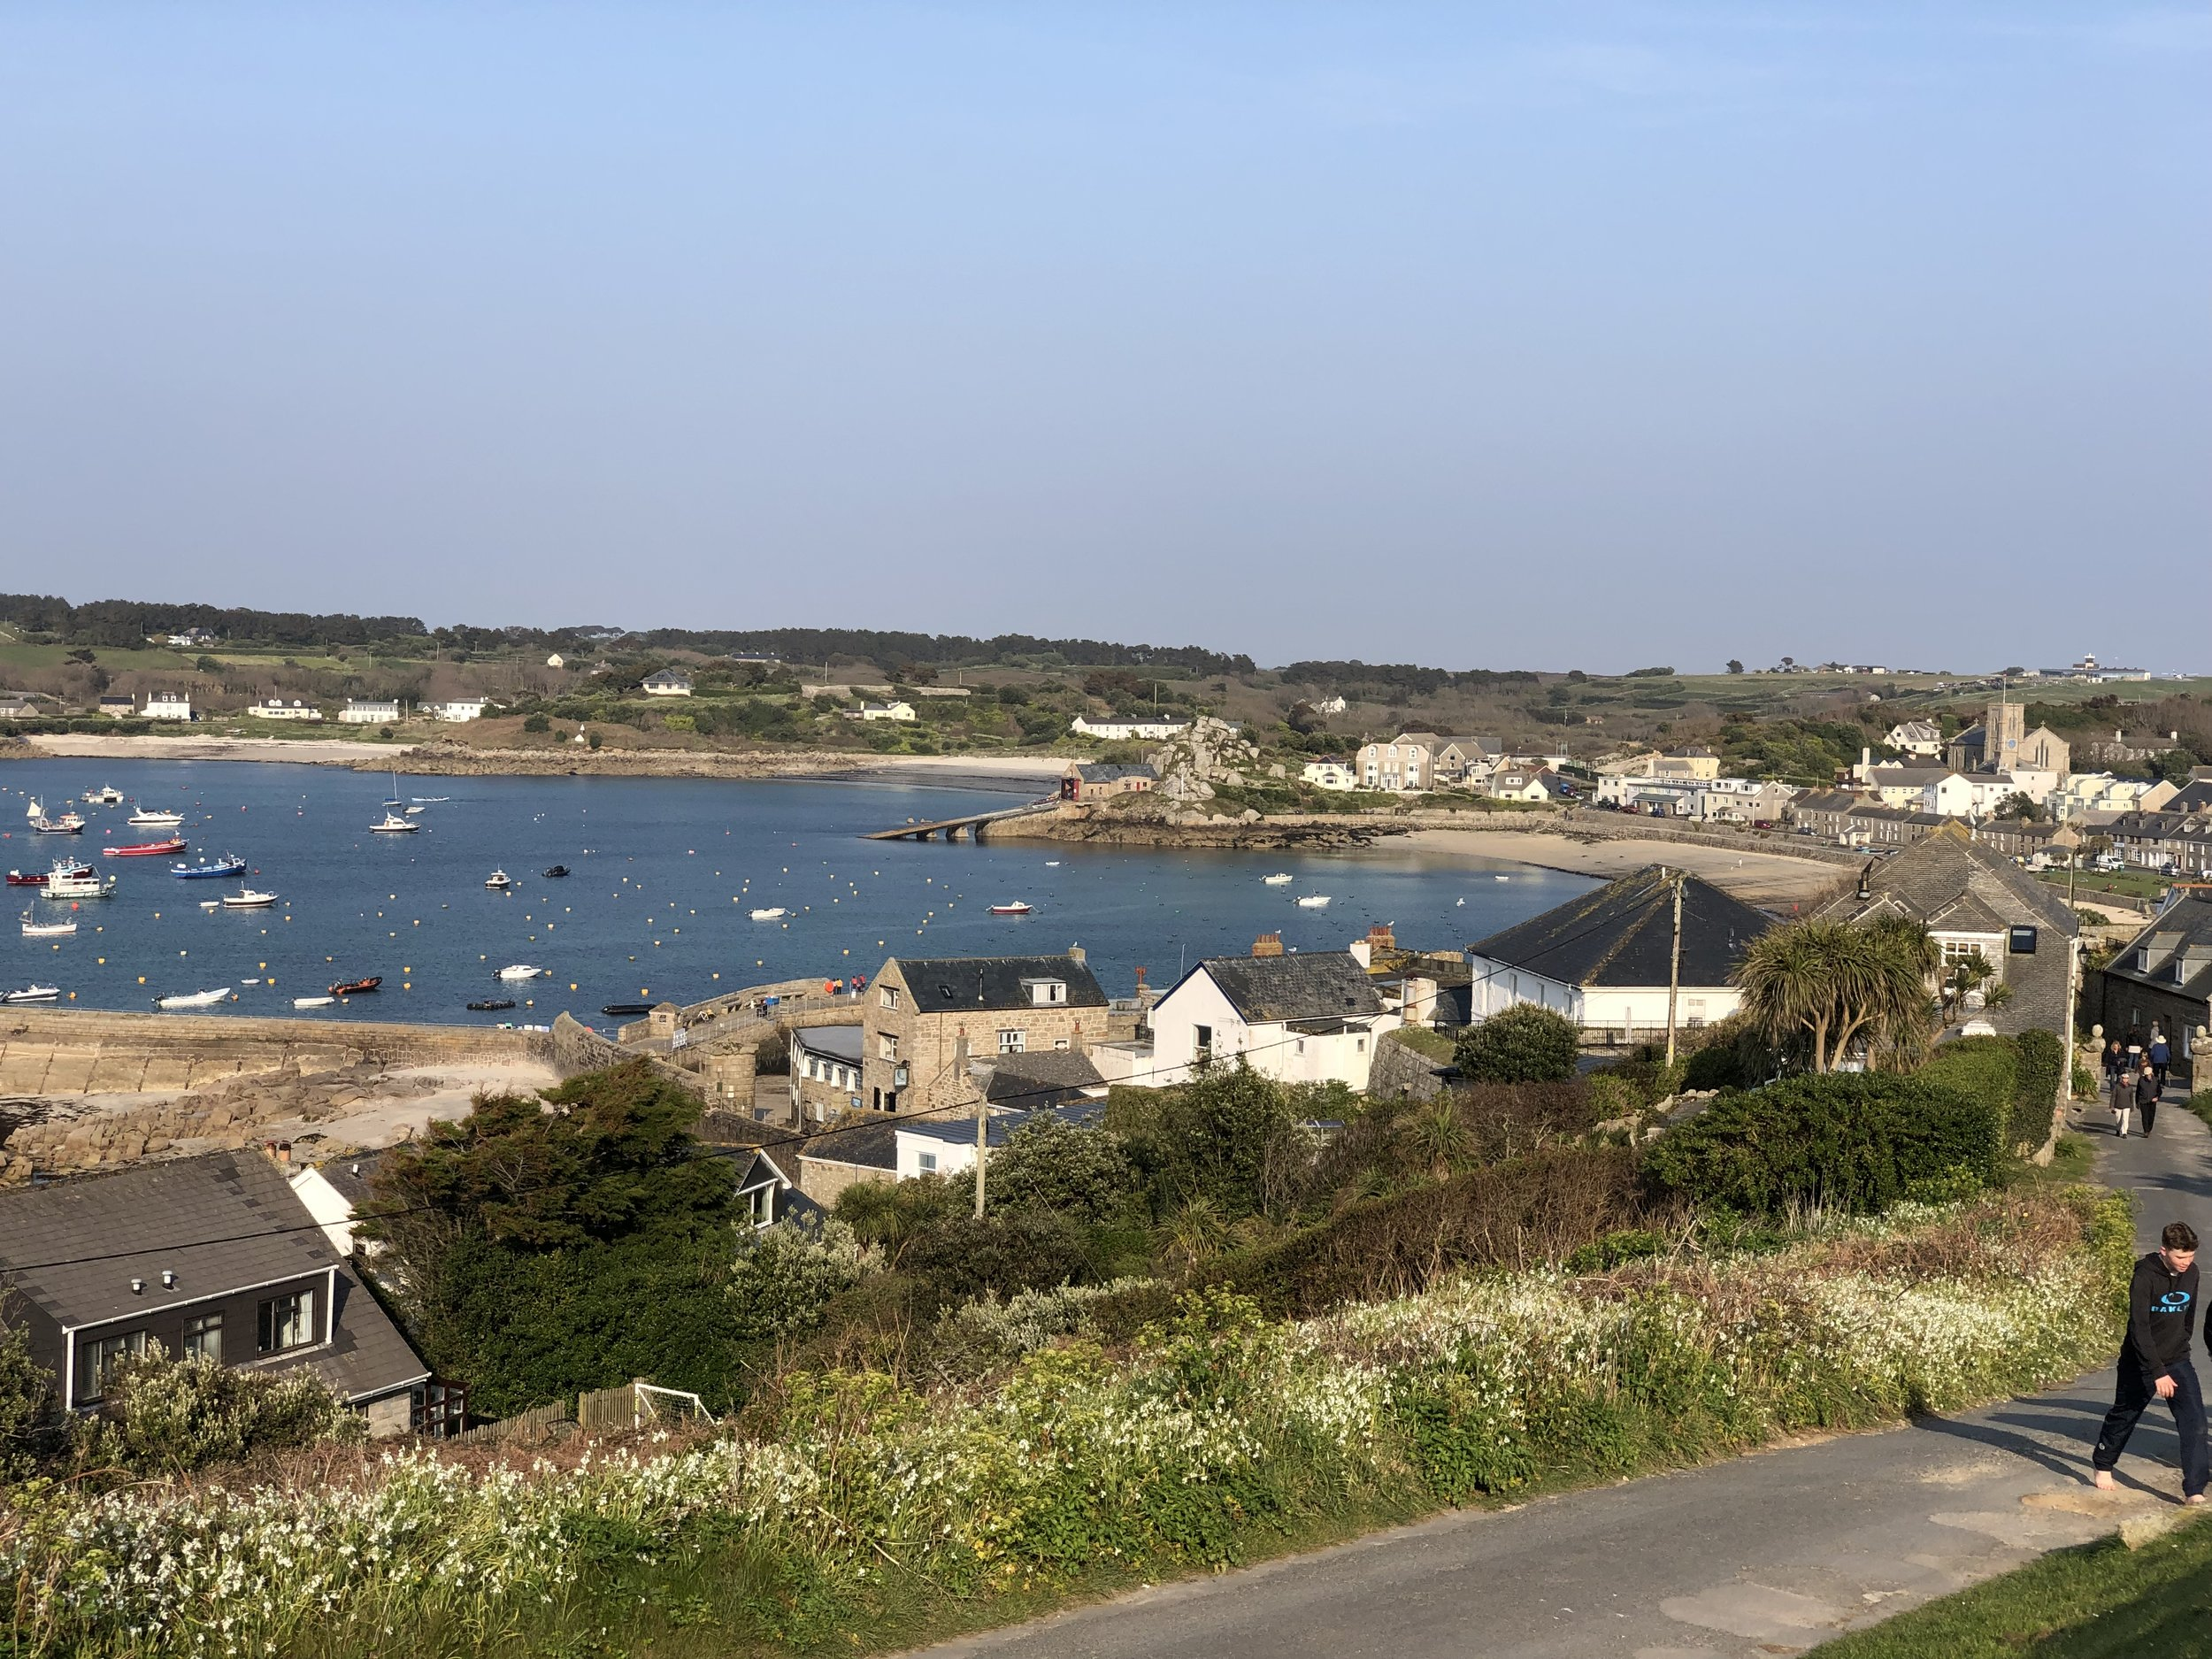 VIEW FROMstar castle hotel, isles of scilly, st. marys.jpg